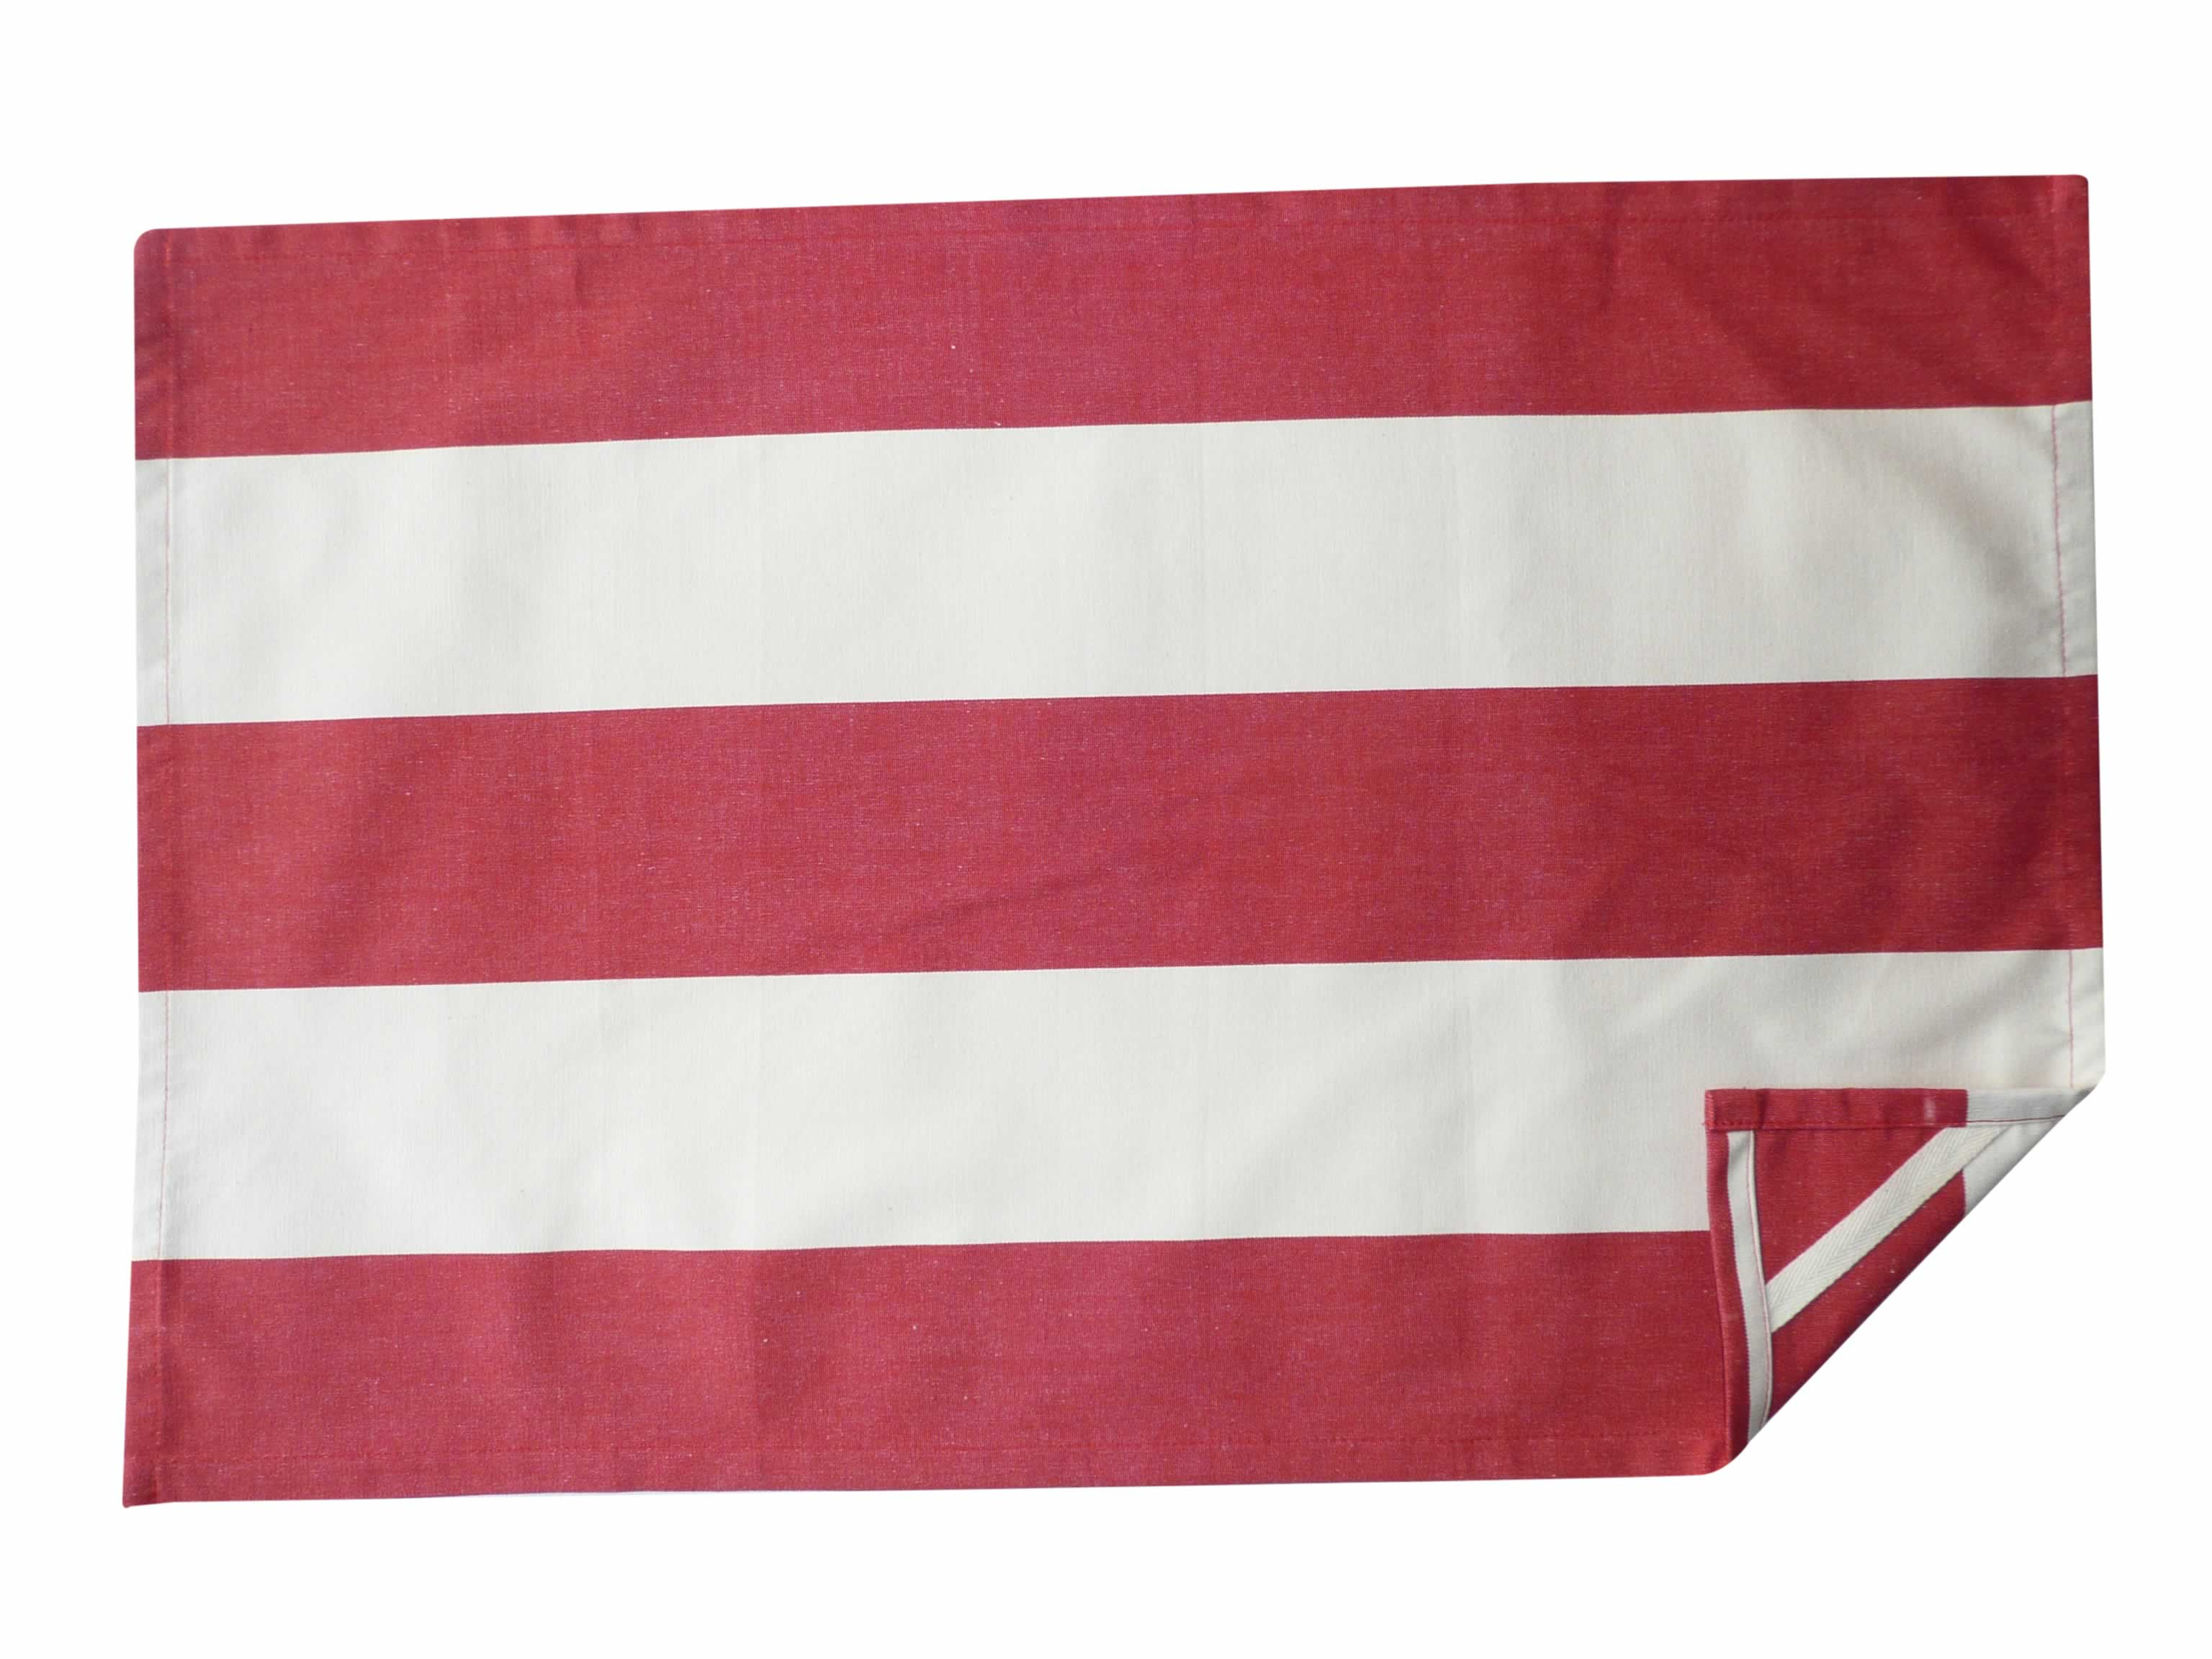 Red Stripe Tea Towels - Juggling Stripe